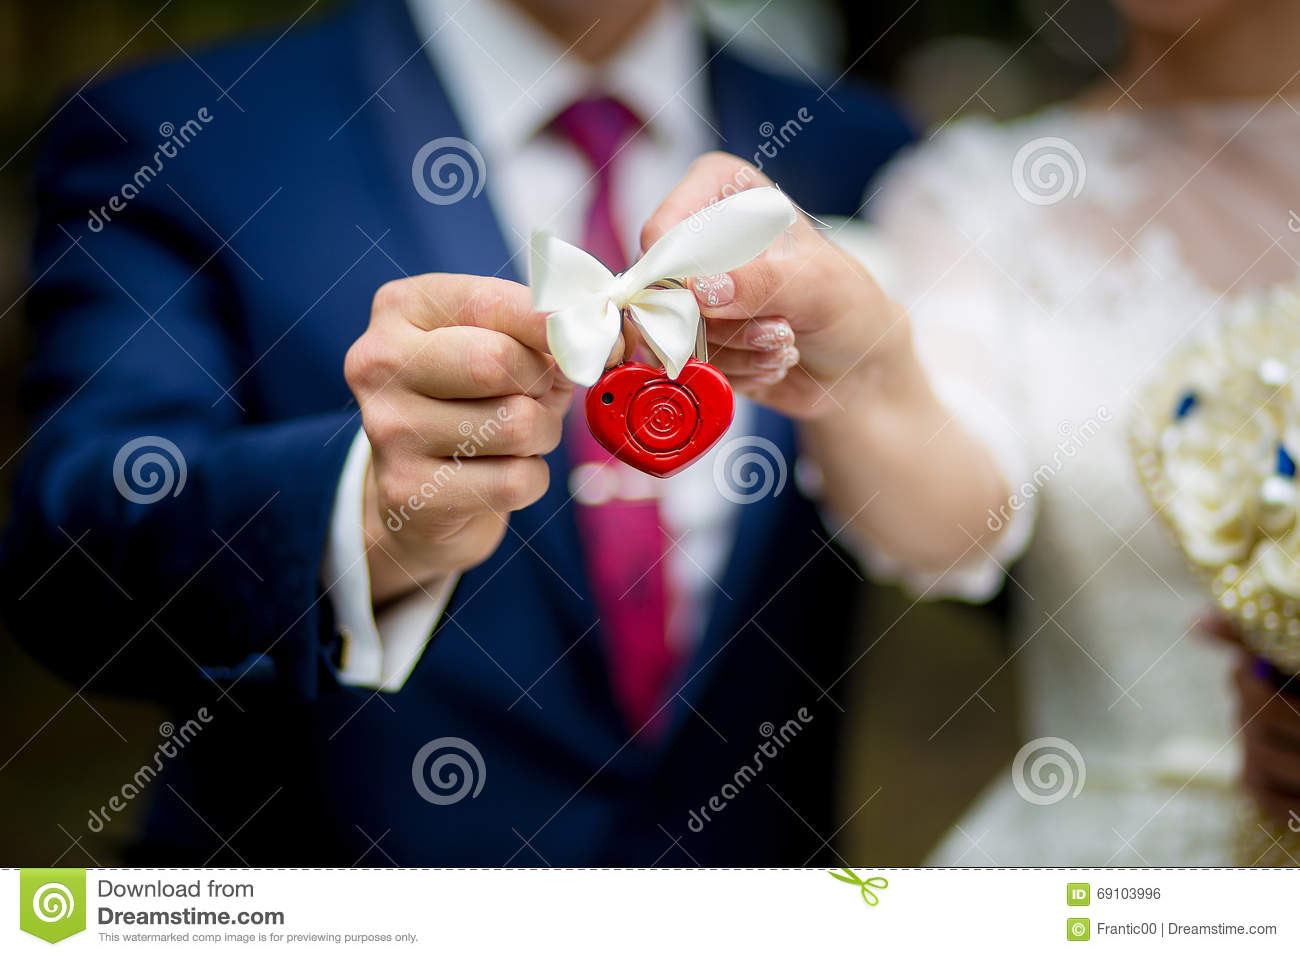 The lock in hands of the newly married couple, closeup.